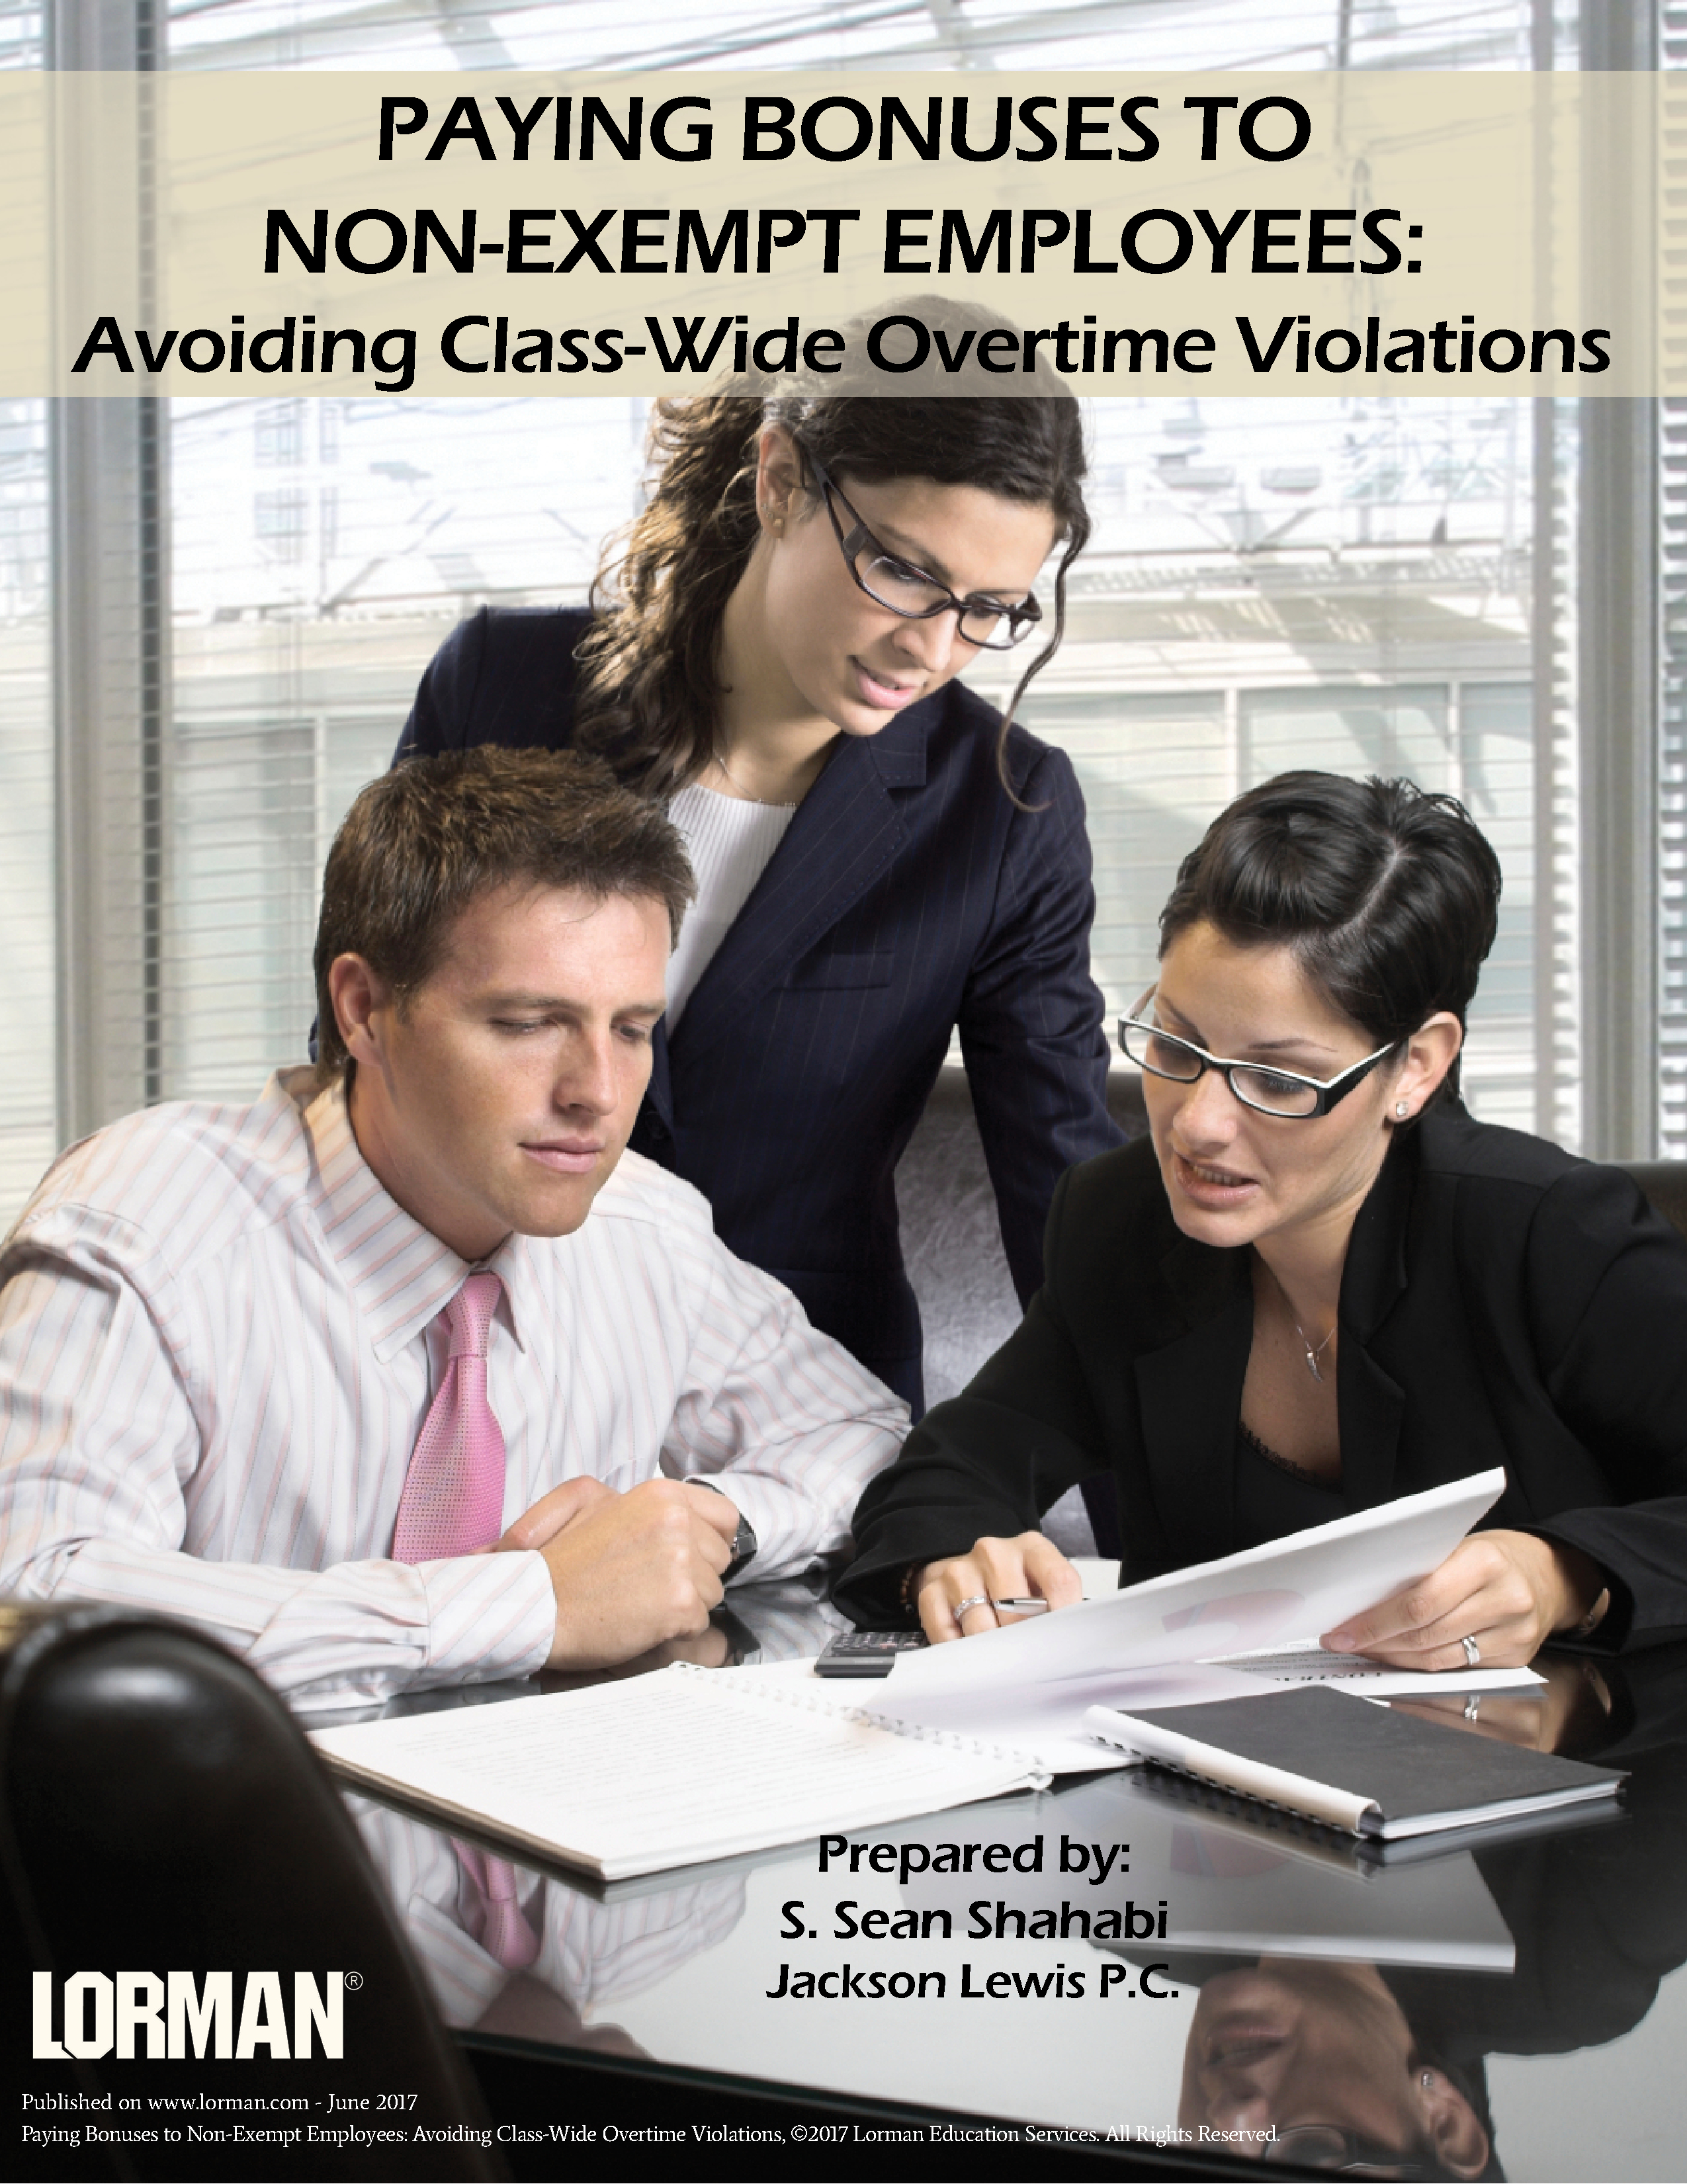 Paying Bonuses to Non-Exempt Employees: Avoiding Class-Wide Overtime Violations